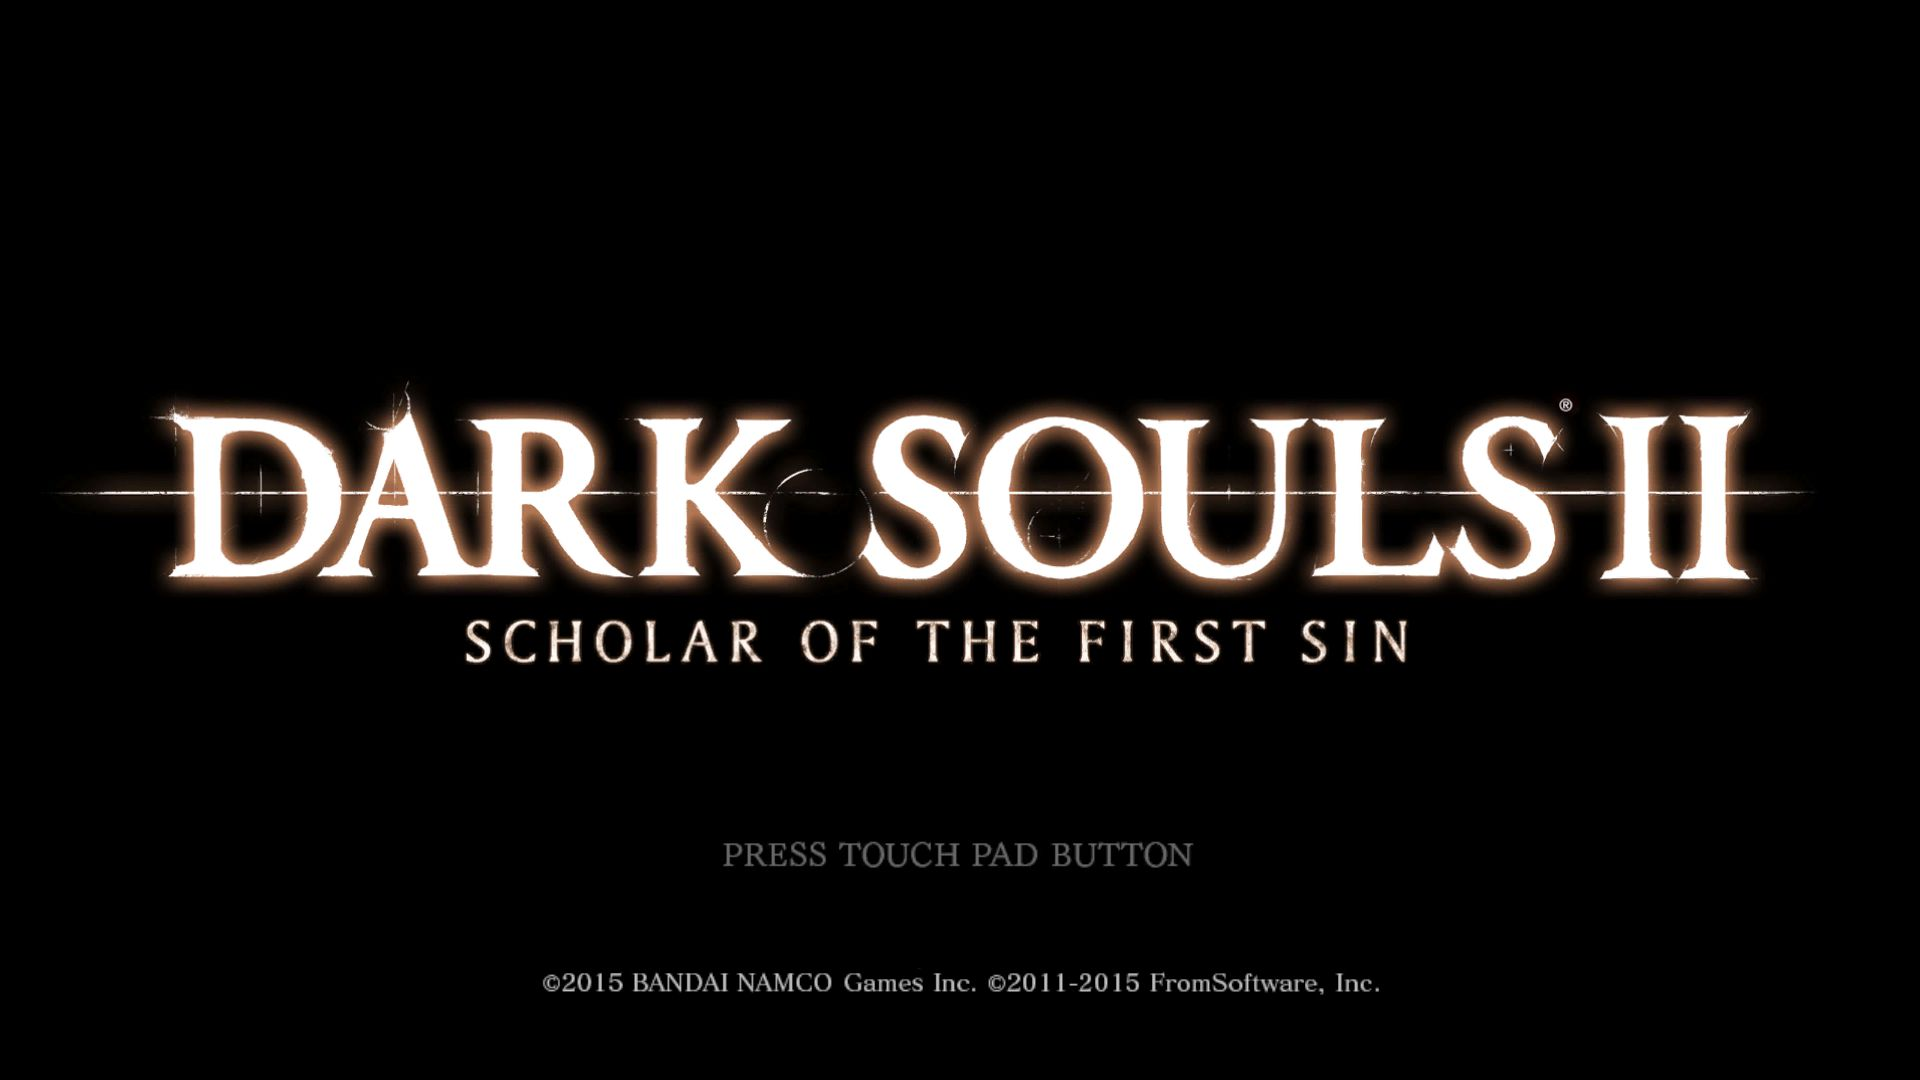 DARK SOULS Ⅱ SCHOLAR OF THE FIRST SIN Vol.6